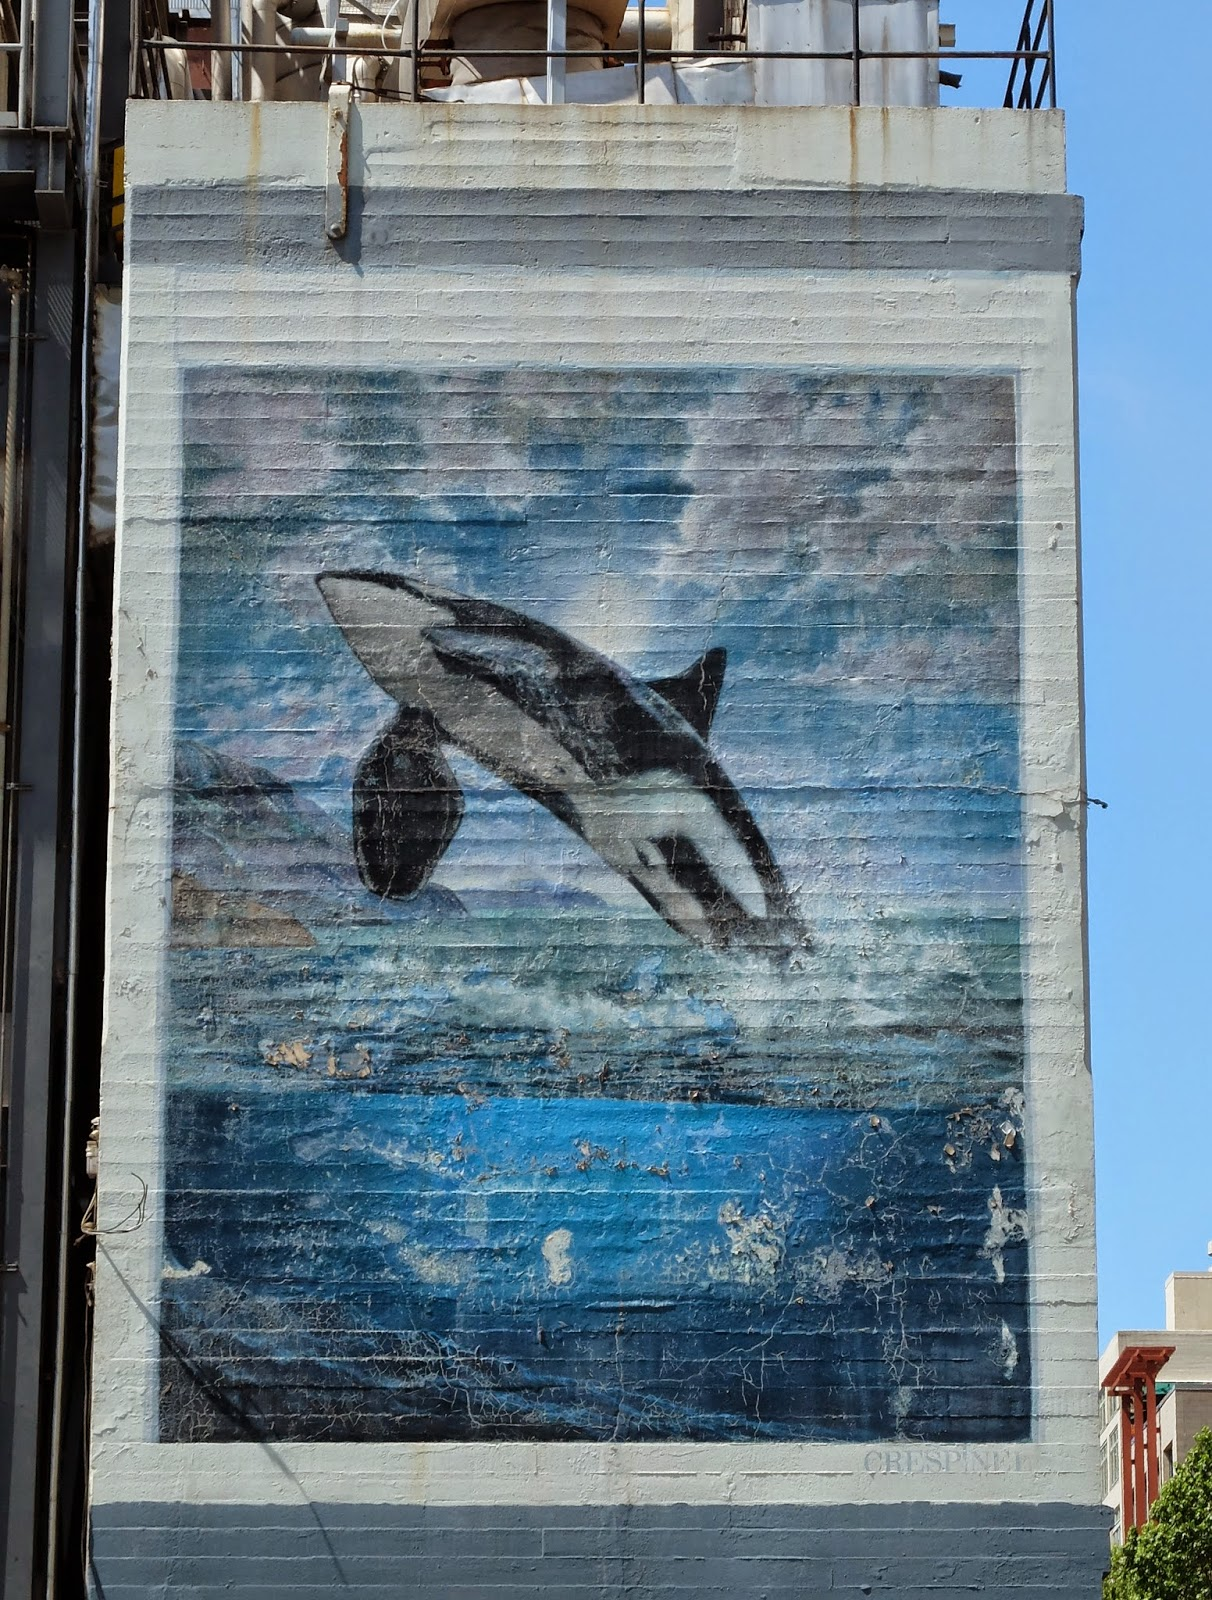 travelmarx seattle murals street art seattle steam plant mural orca